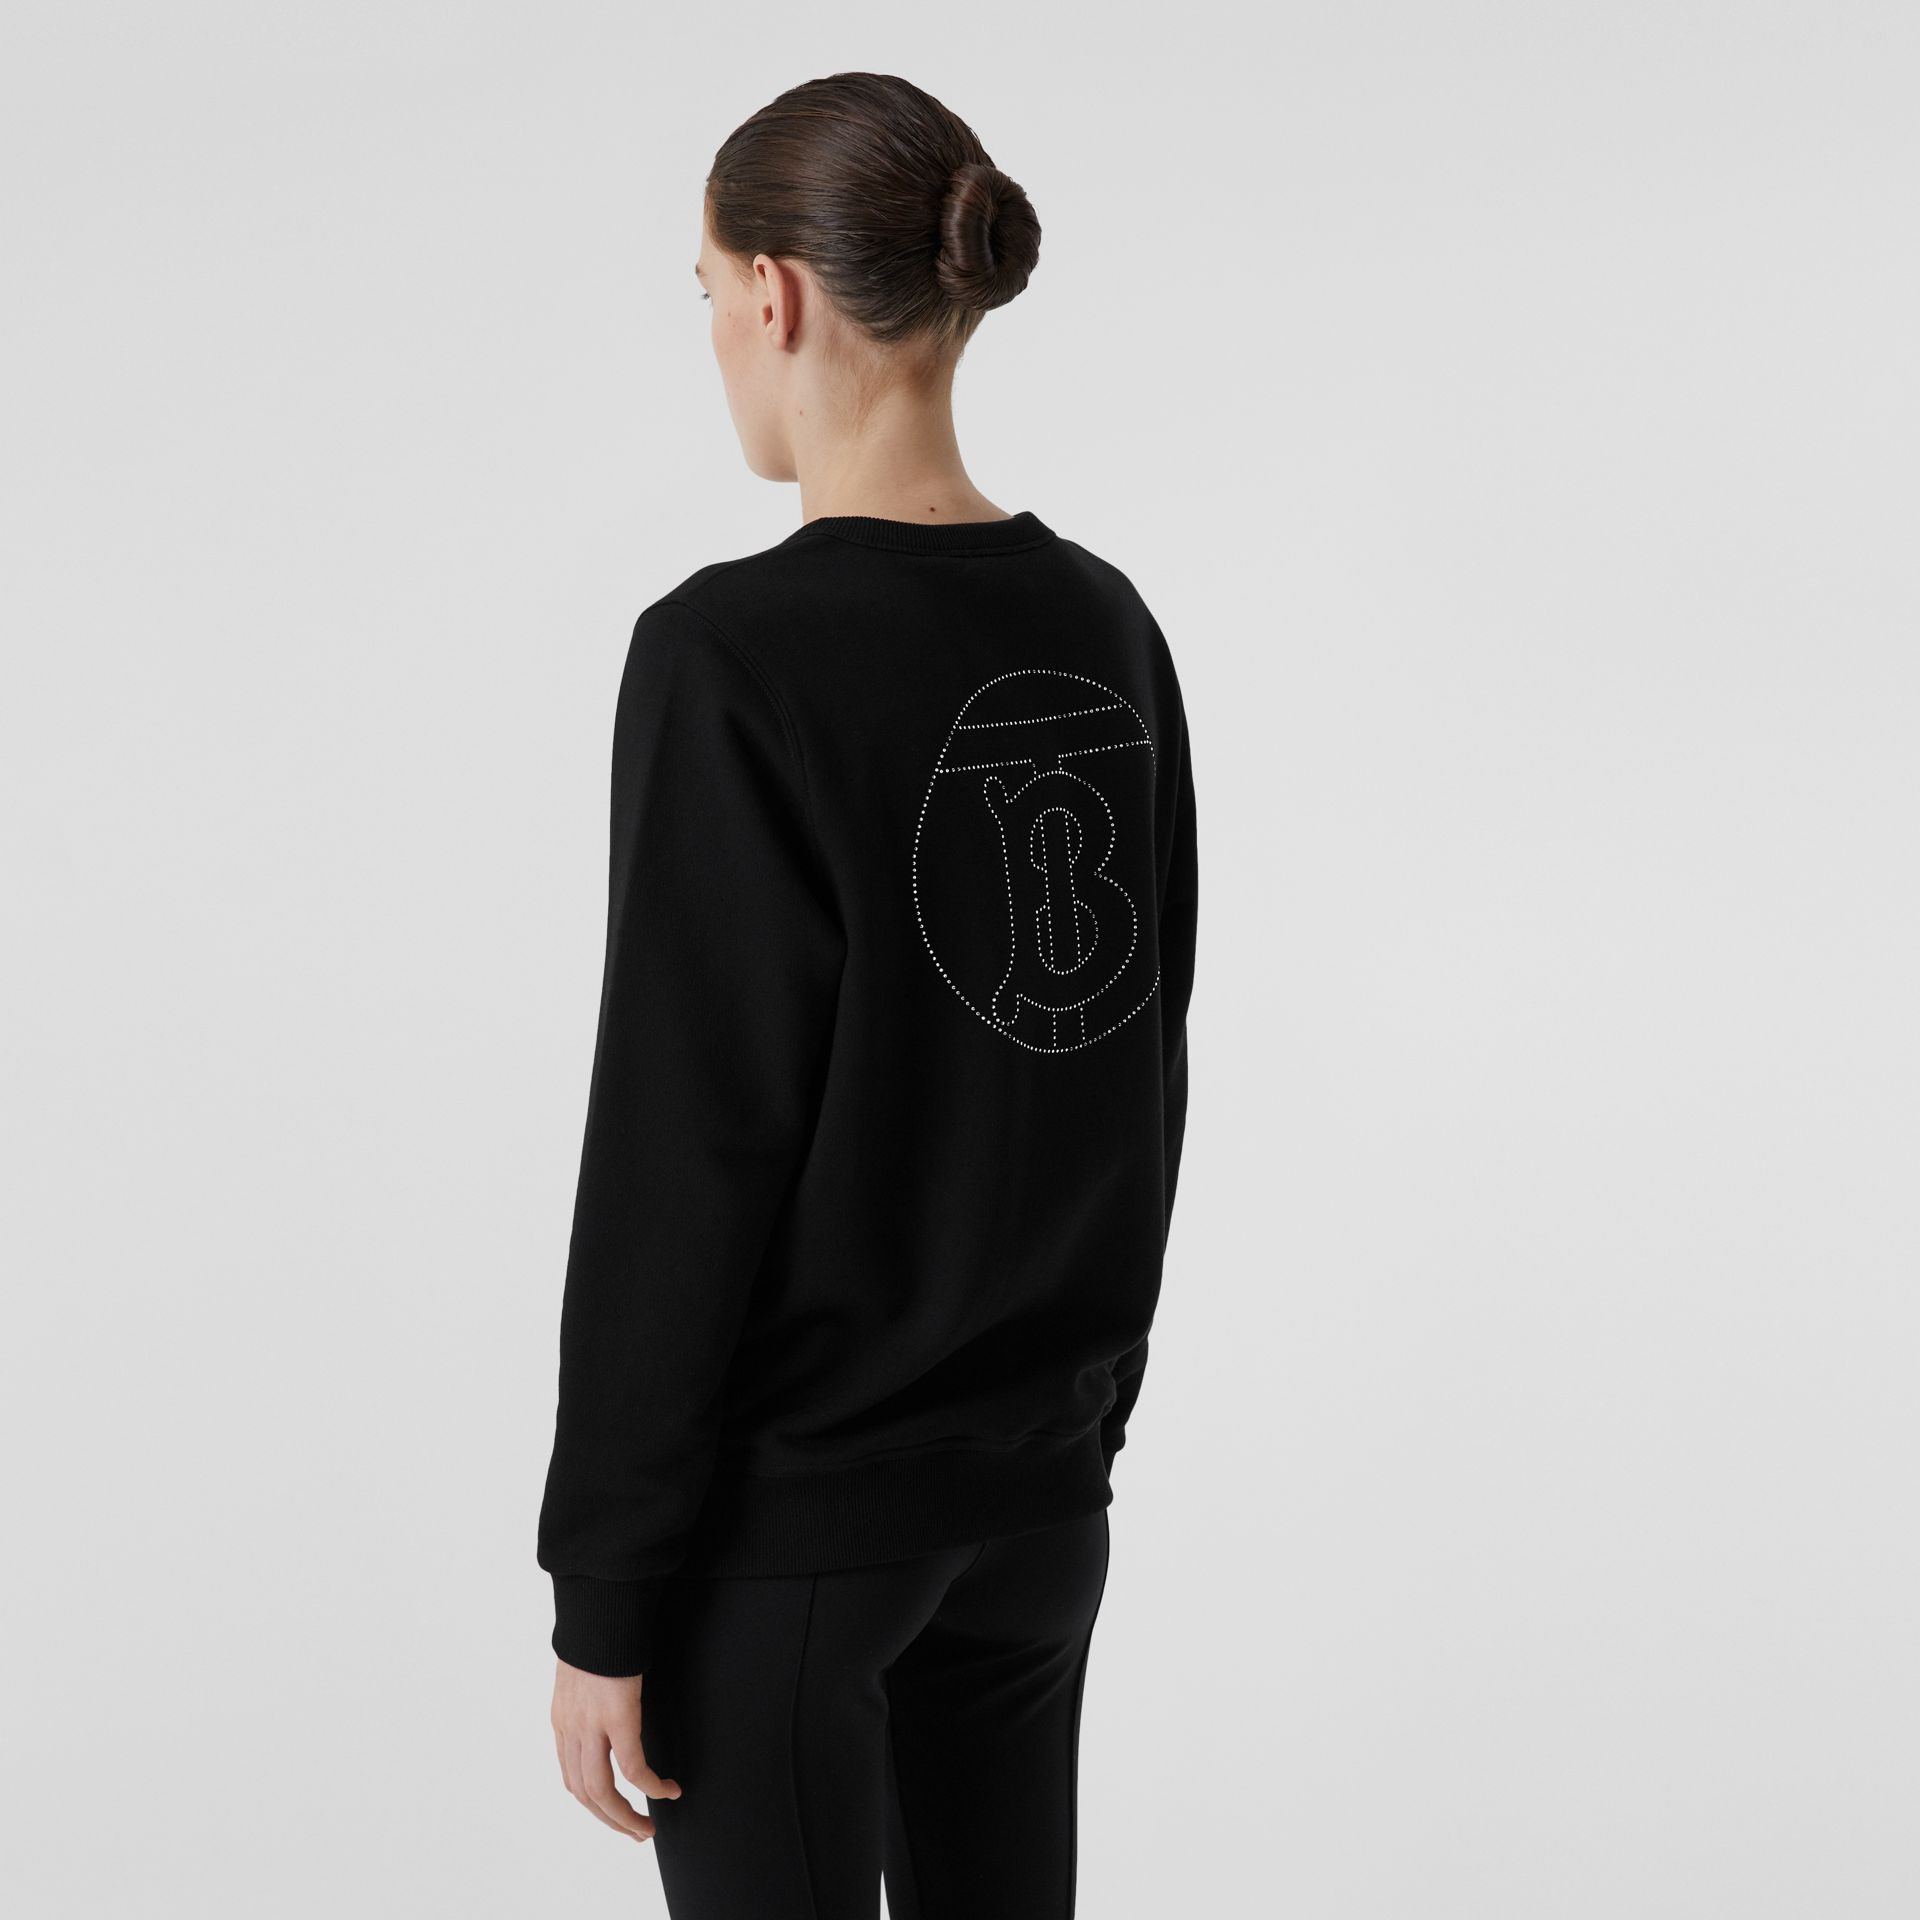 Crystal Monogram Motif Cotton Oversized Sweatshirt in Black - Women | Burberry - gallery image 4